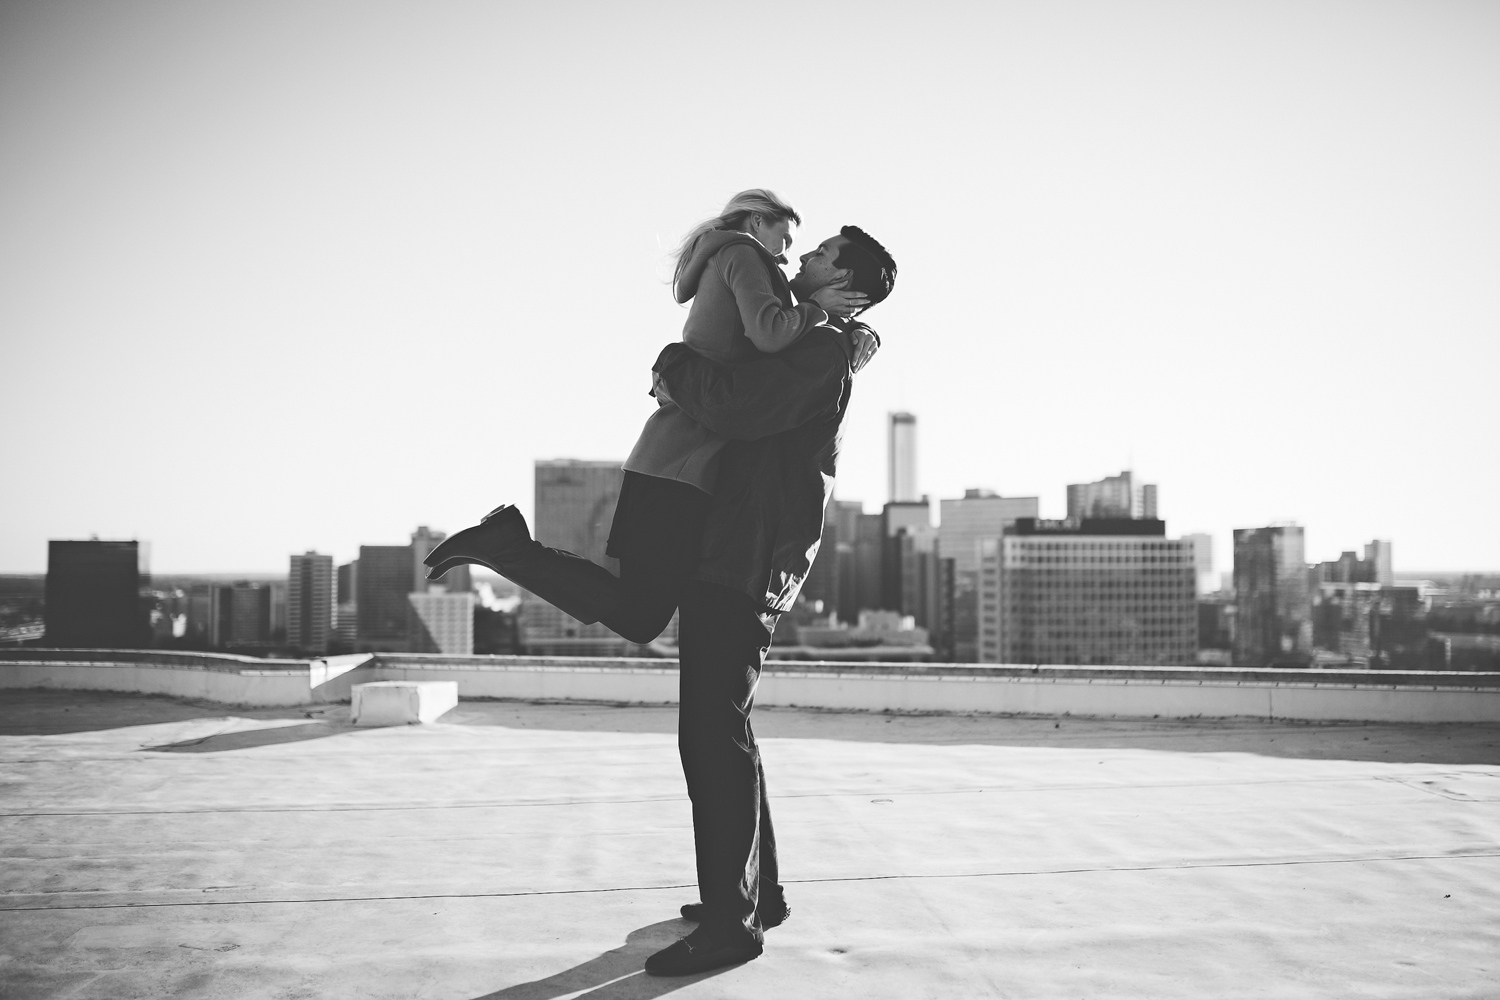 KDP_claire&drew - the proposal-299.jpg